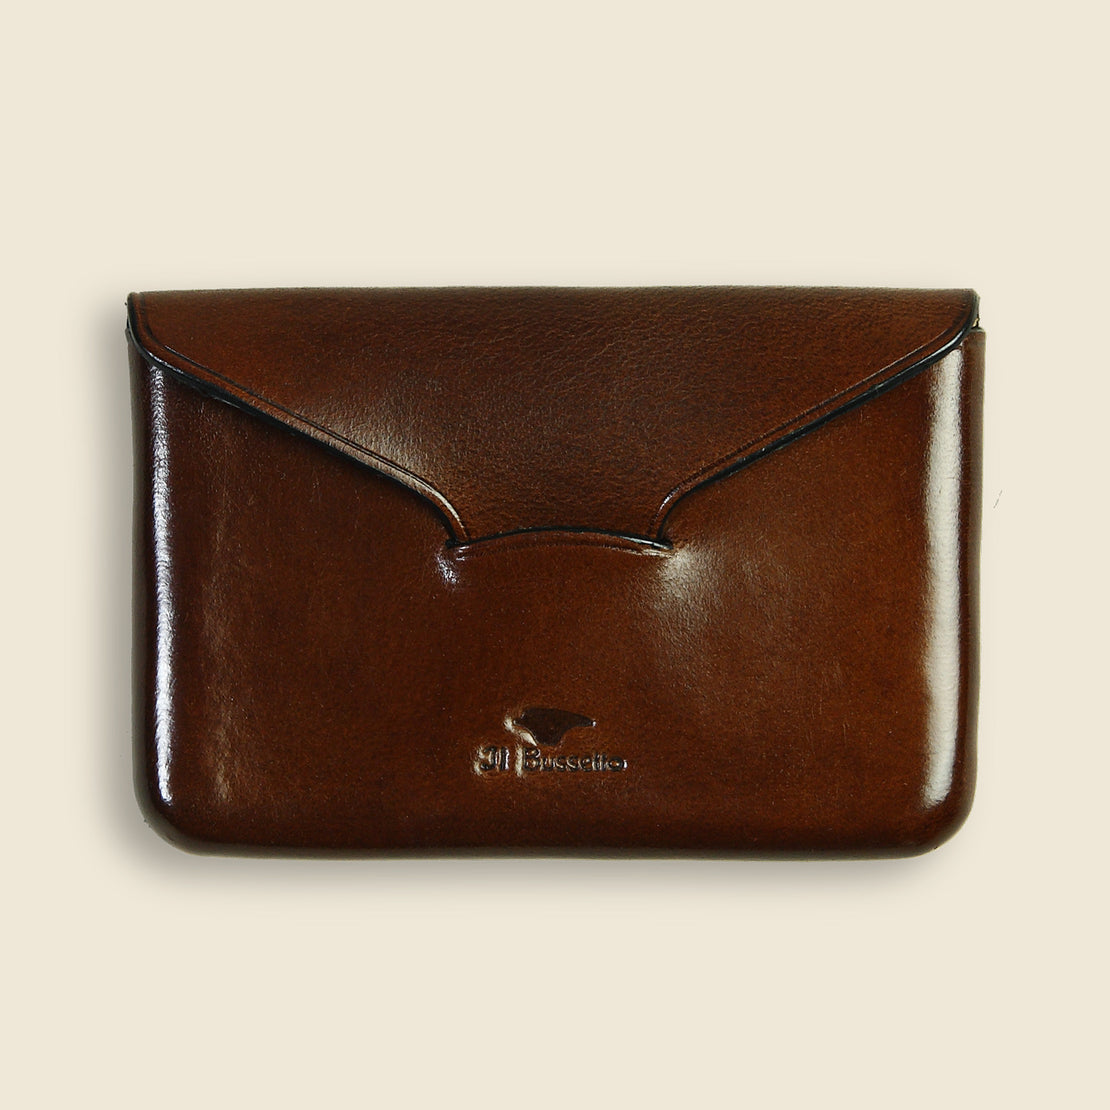 Il Bussetto Business Card Holder - Dark Brown